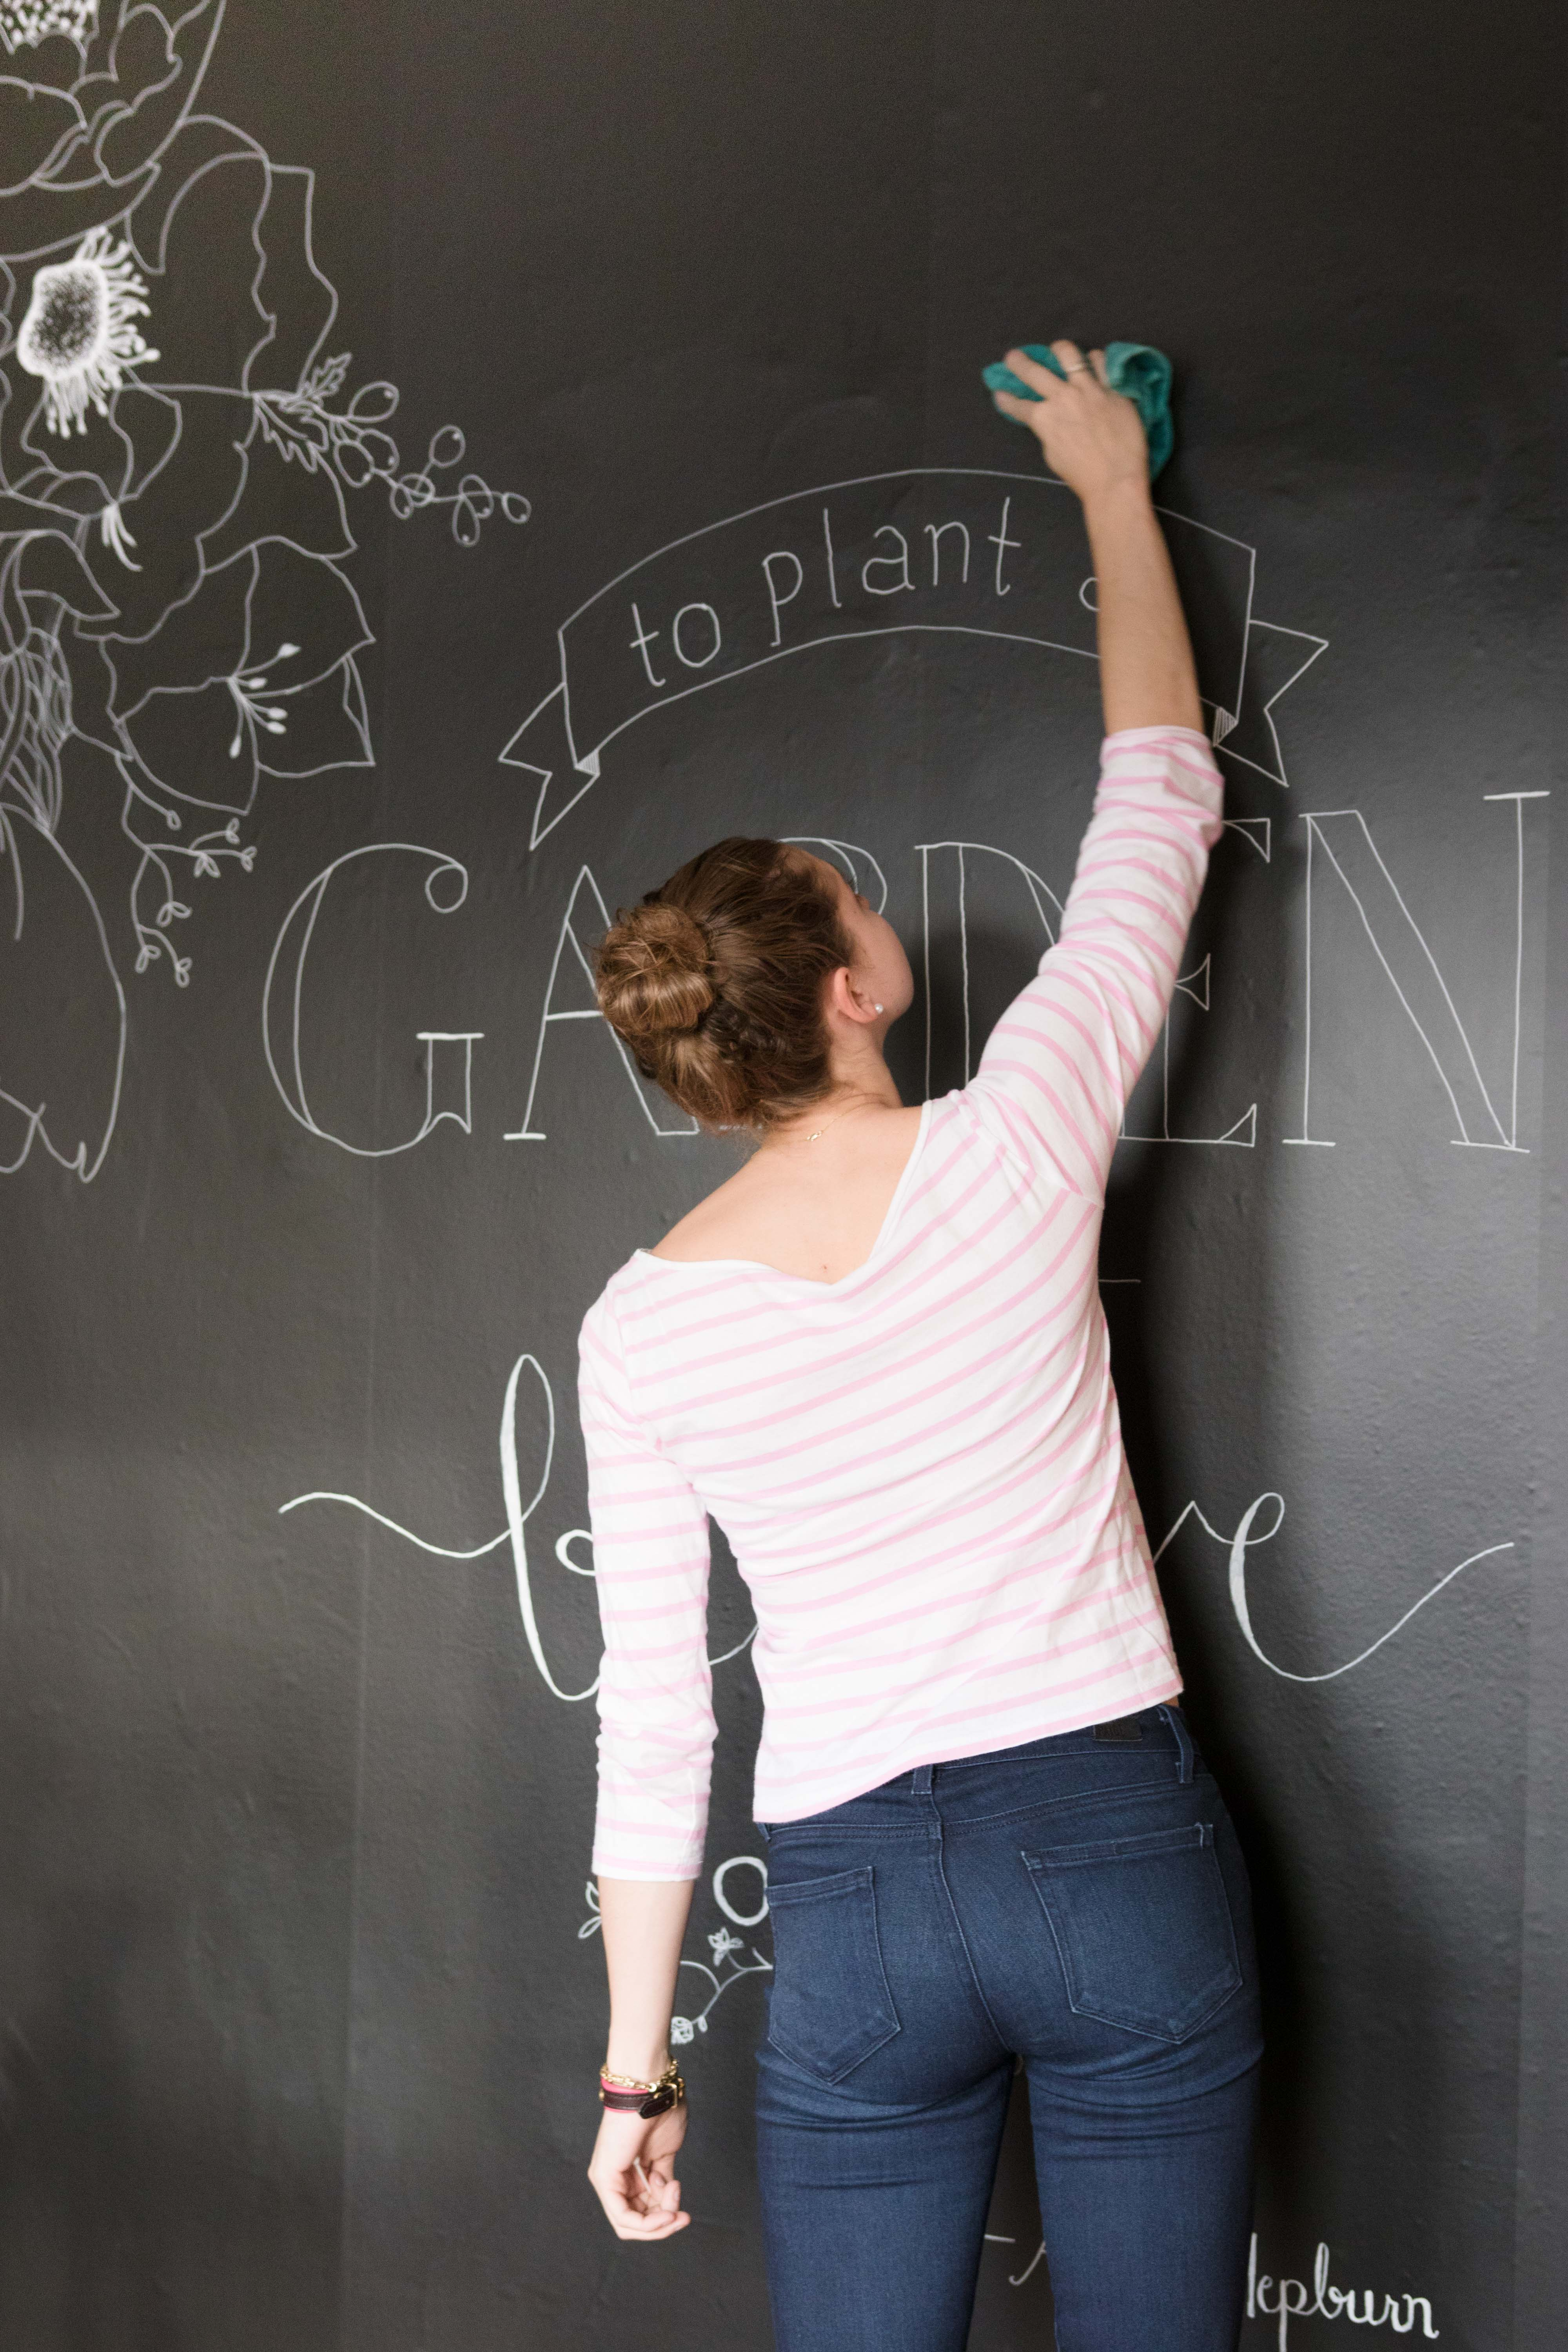 Cleaning Chalkboard Peel and Stick Wallpaper